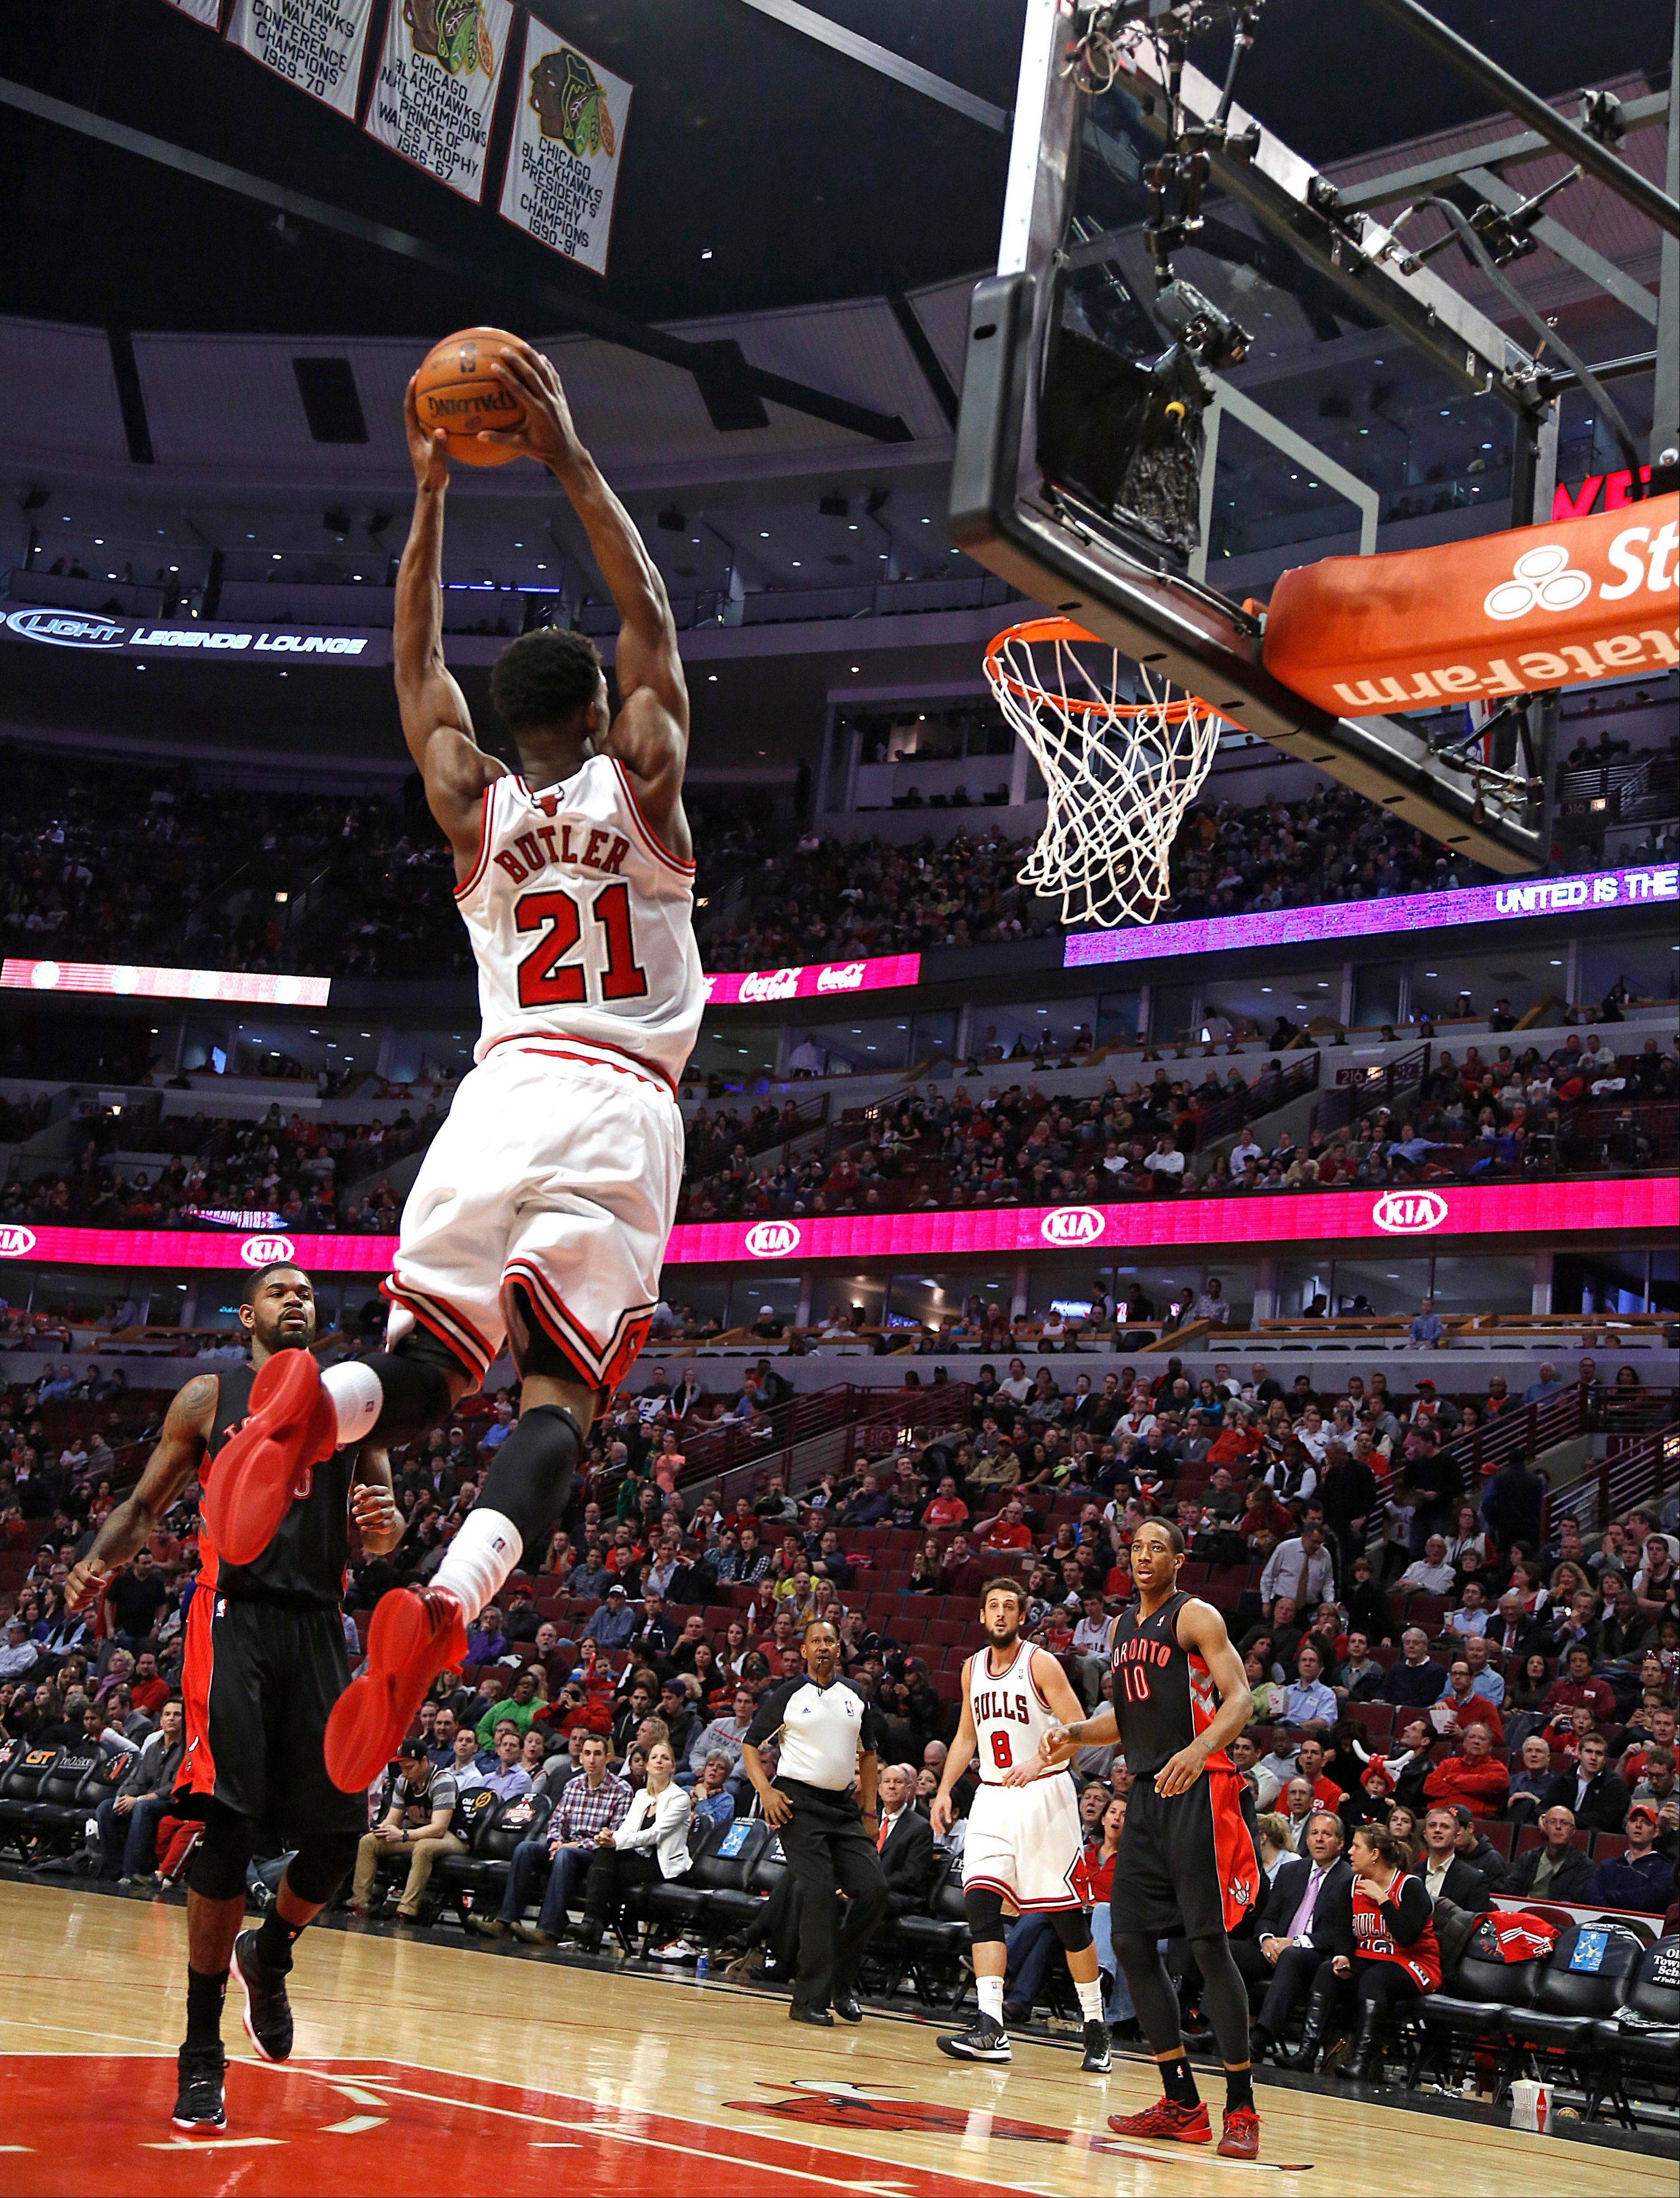 Chicago Bulls� Jimmy Butler who scored a career high 28 points is about dunk on the Toronto Raptors during the second half as the Raptors beat the Bulls 101-98 in an NBA basketball game on Tuesday, April 9, 2013 in Chicago. (AP Photo/Charles Cherney)